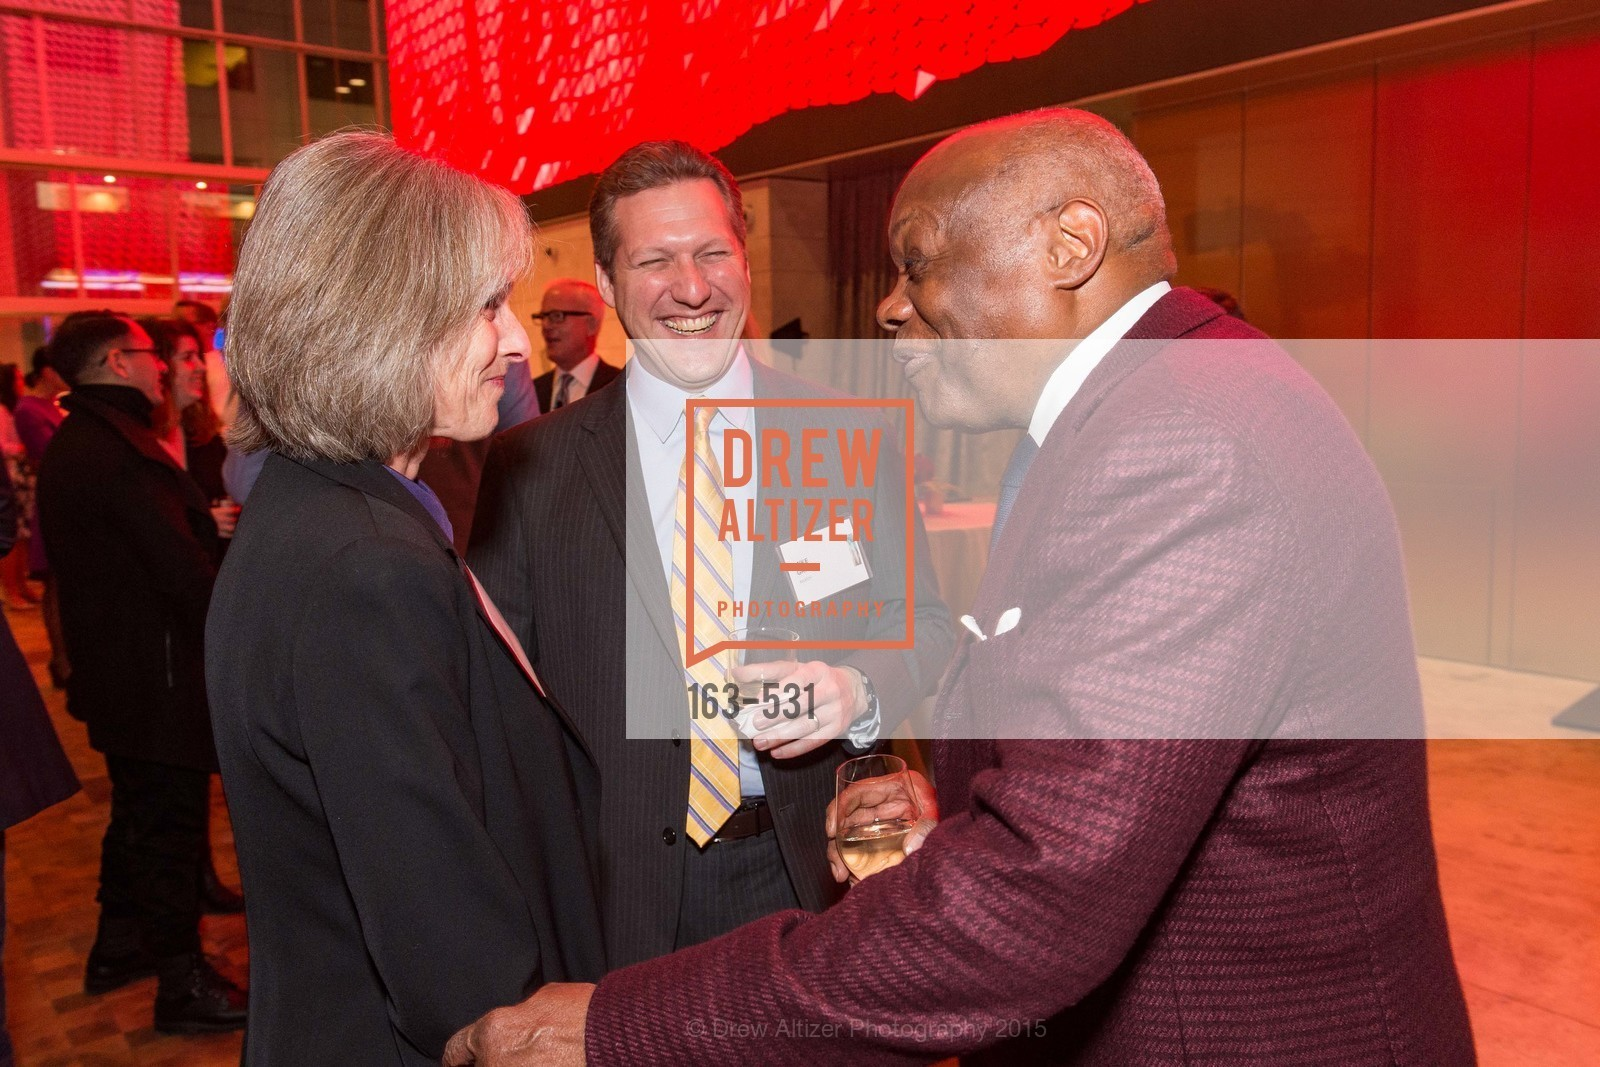 Mike Grisso, Willie Brown, Kilroy Unveiling Presents Virtual Depictions: San Francisco by Refik Anadol, 350 Mission Street. 350 Mission Street, November 16th, 2015,Drew Altizer, Drew Altizer Photography, full-service agency, private events, San Francisco photographer, photographer california